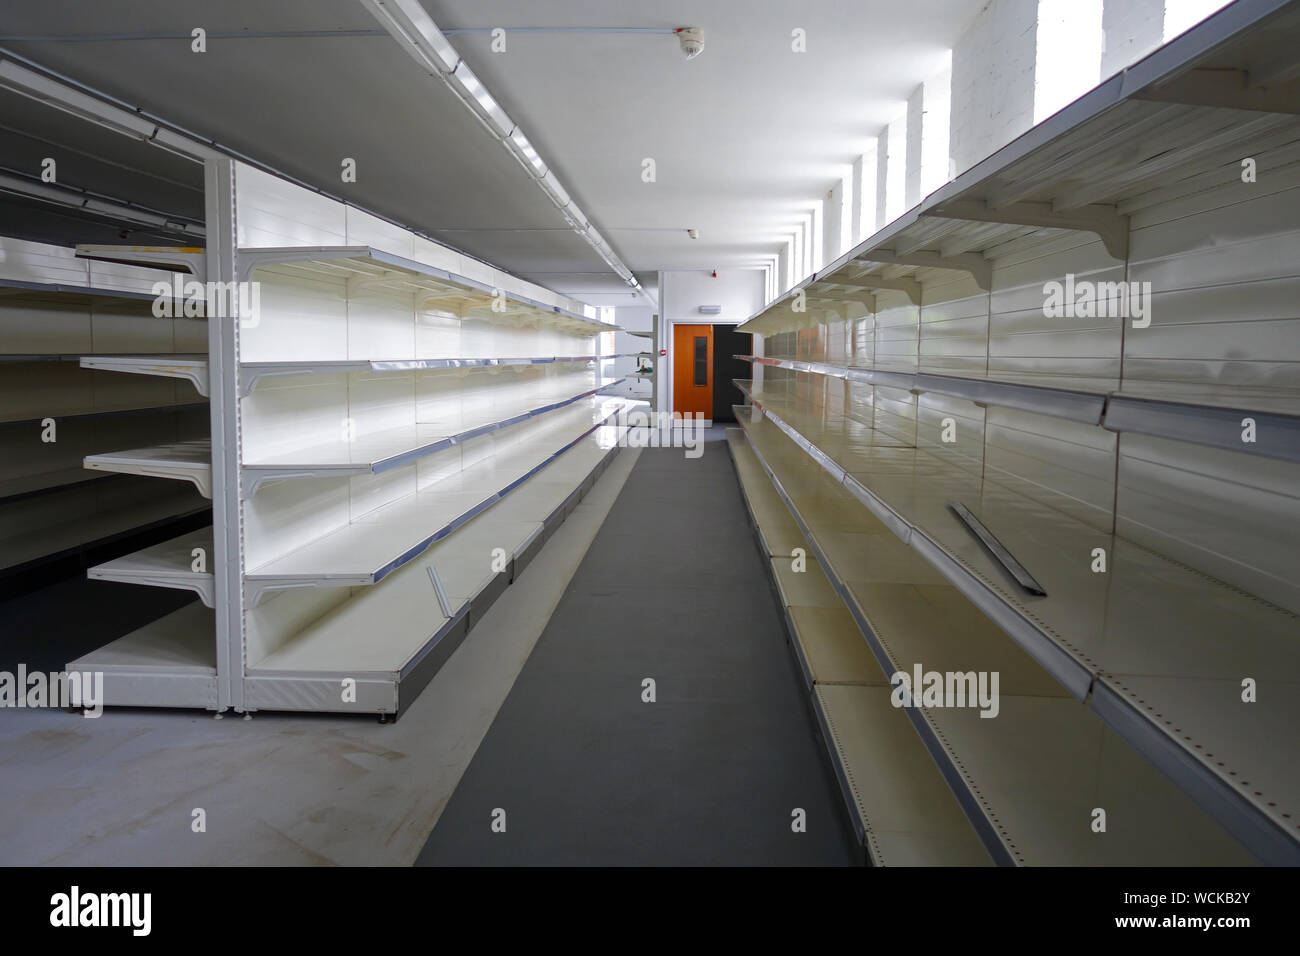 Empty shelves of a closed supermarket that is for sale, Stoke-on-Trent, Staffordshire, England, UK Stock Photo